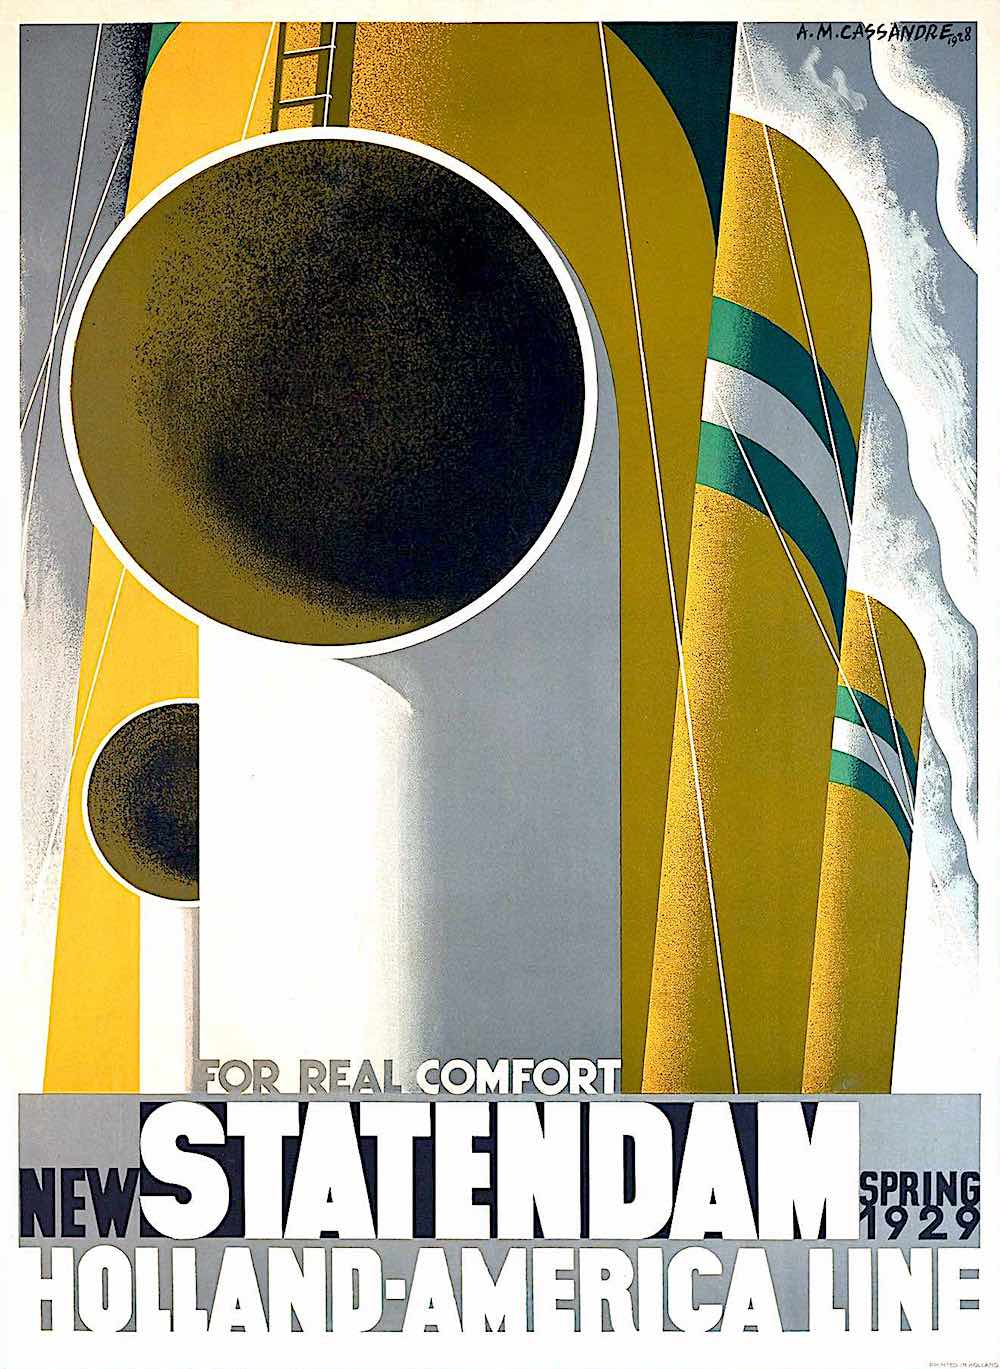 a poster by A.M. Cassandre, New Statendam Holland America Line 1921